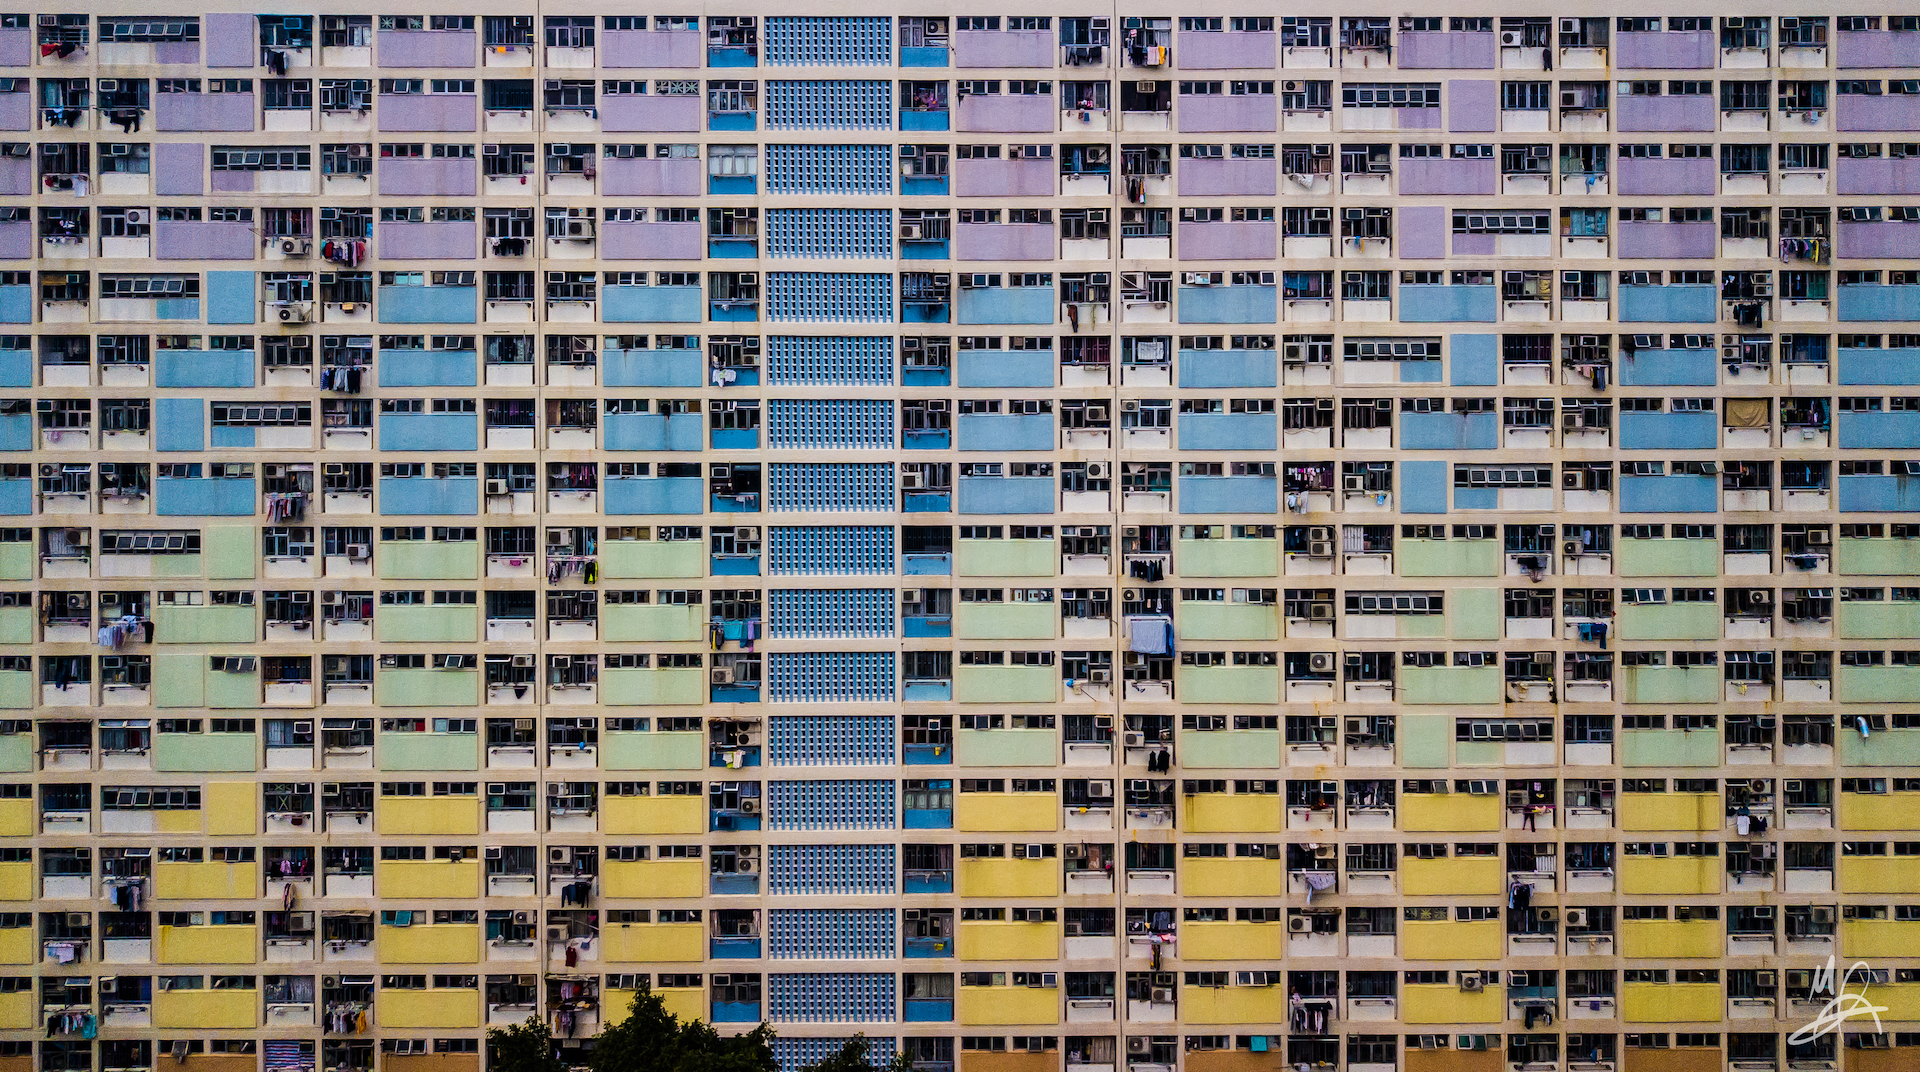 Hong Kong public housing estate - landscape 3/5